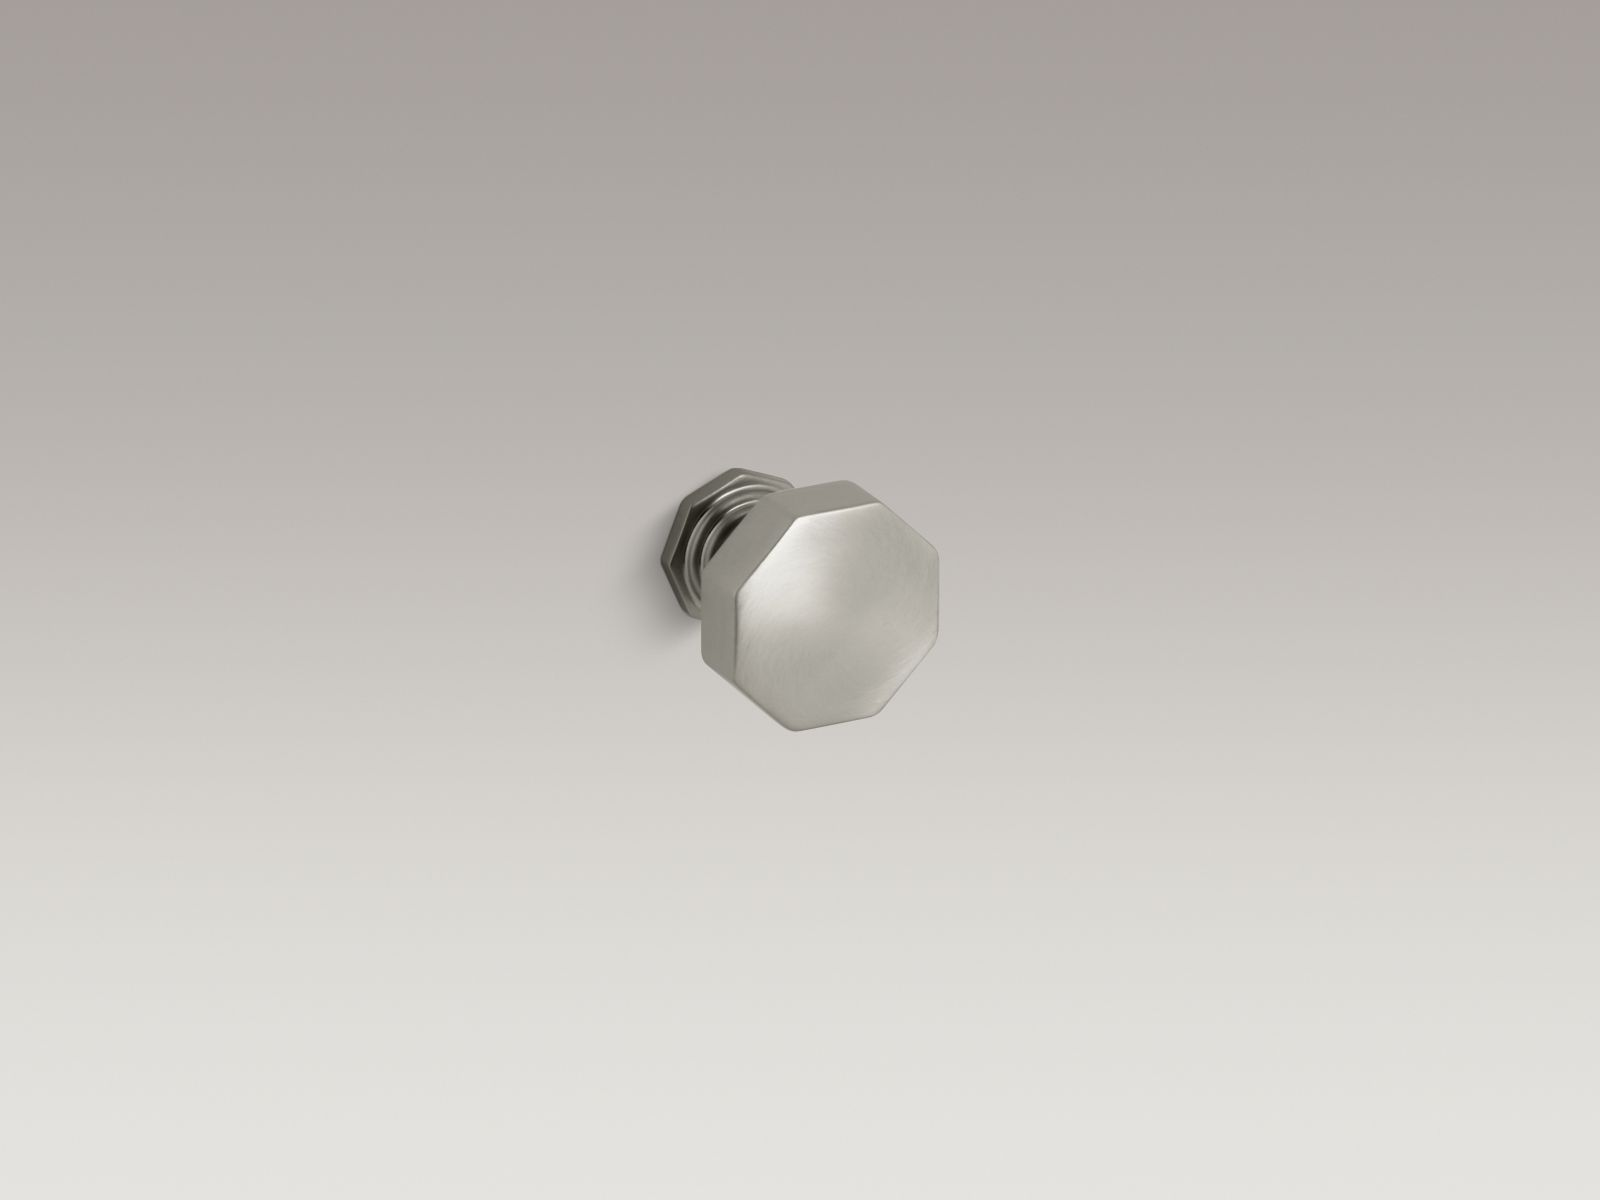 Kohler K-13126-BN Pinstripe Cabinet and Drawer Knob Vibrant Brushed Nickel